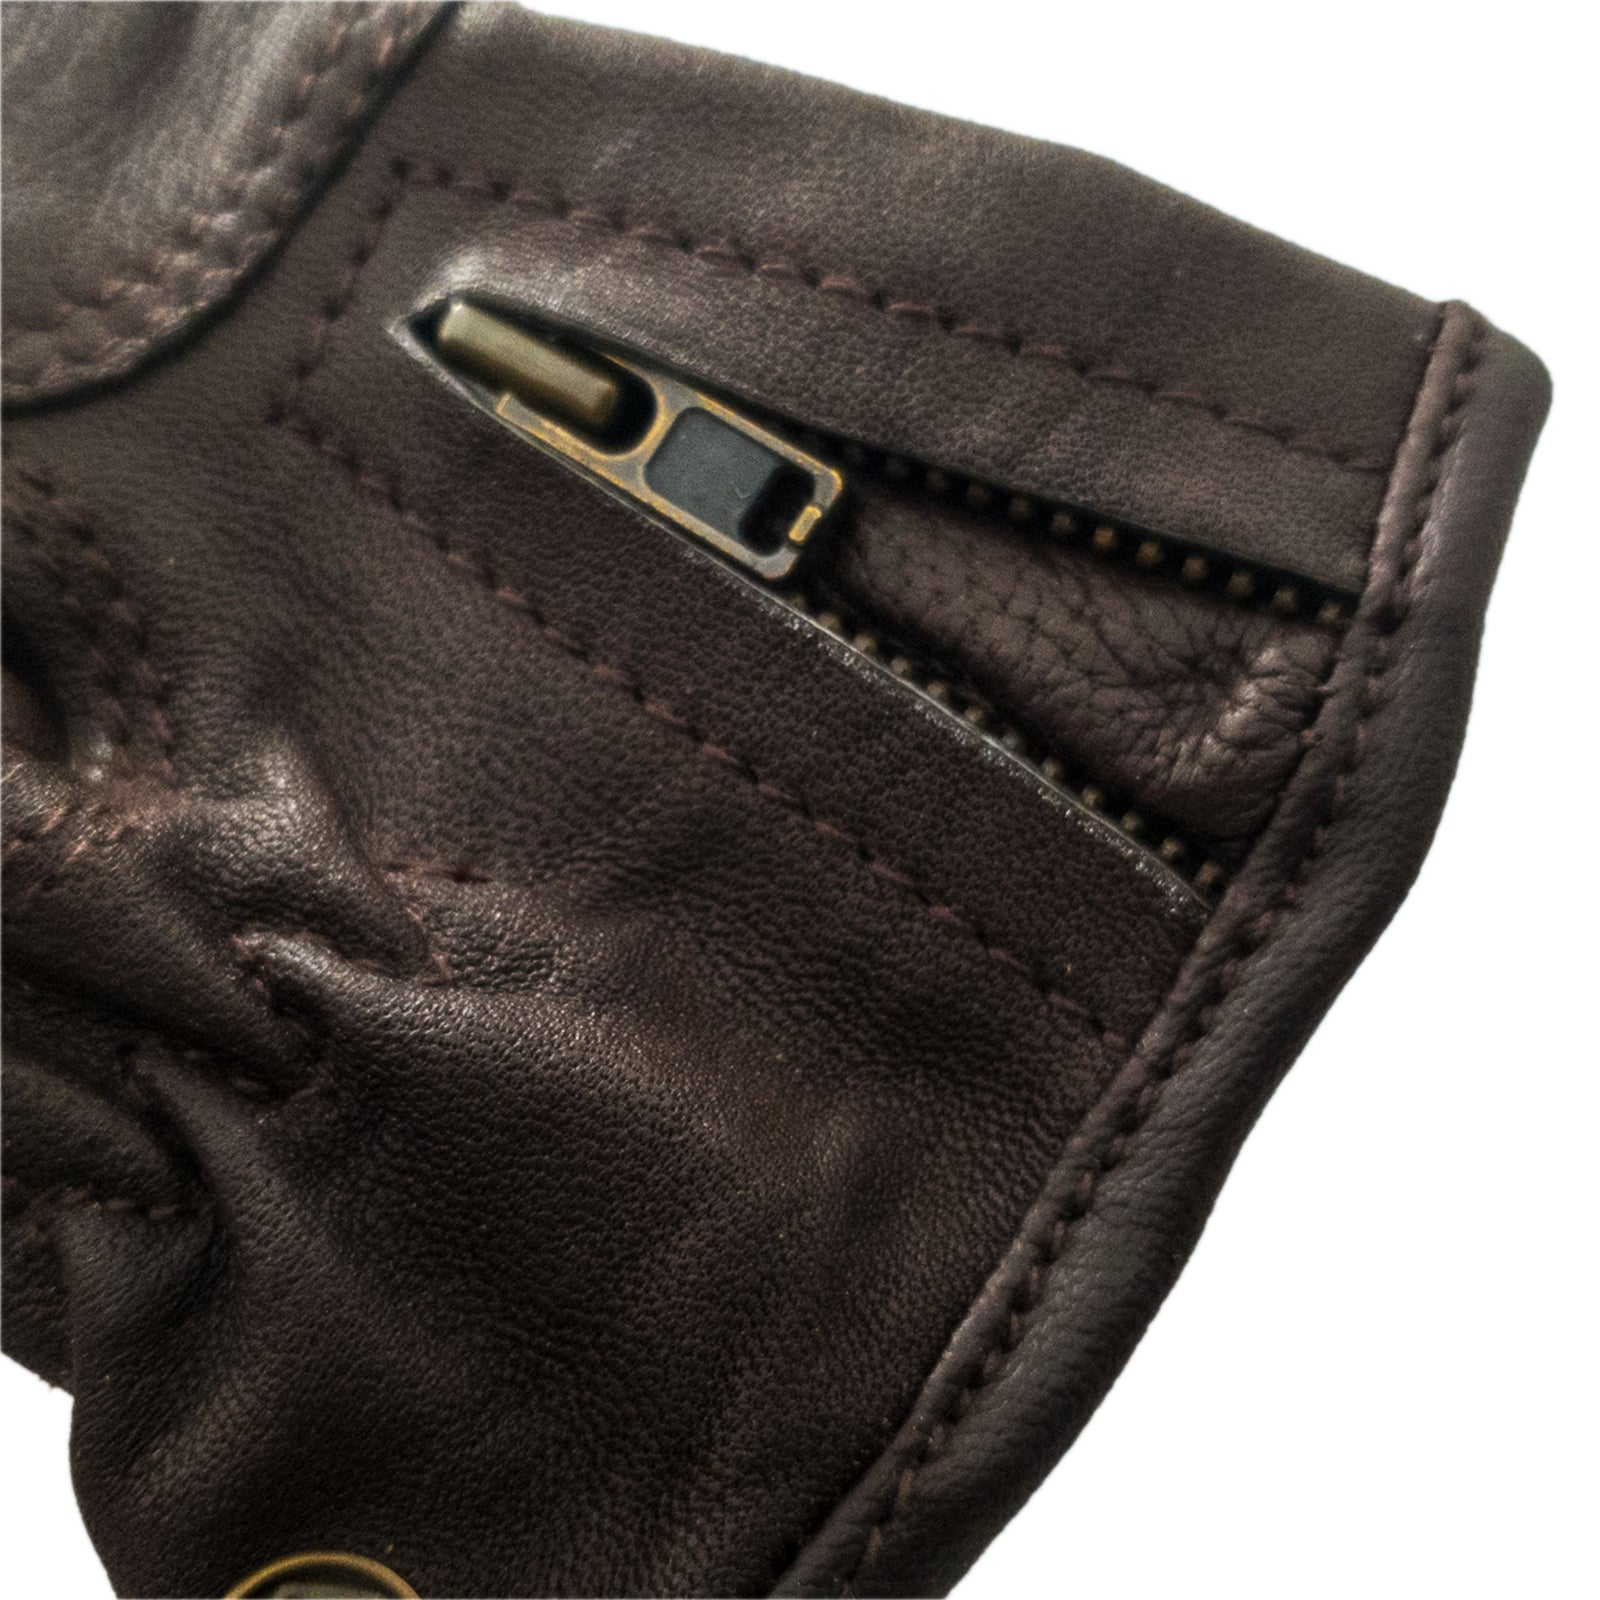 MW Rancher Glove Brown